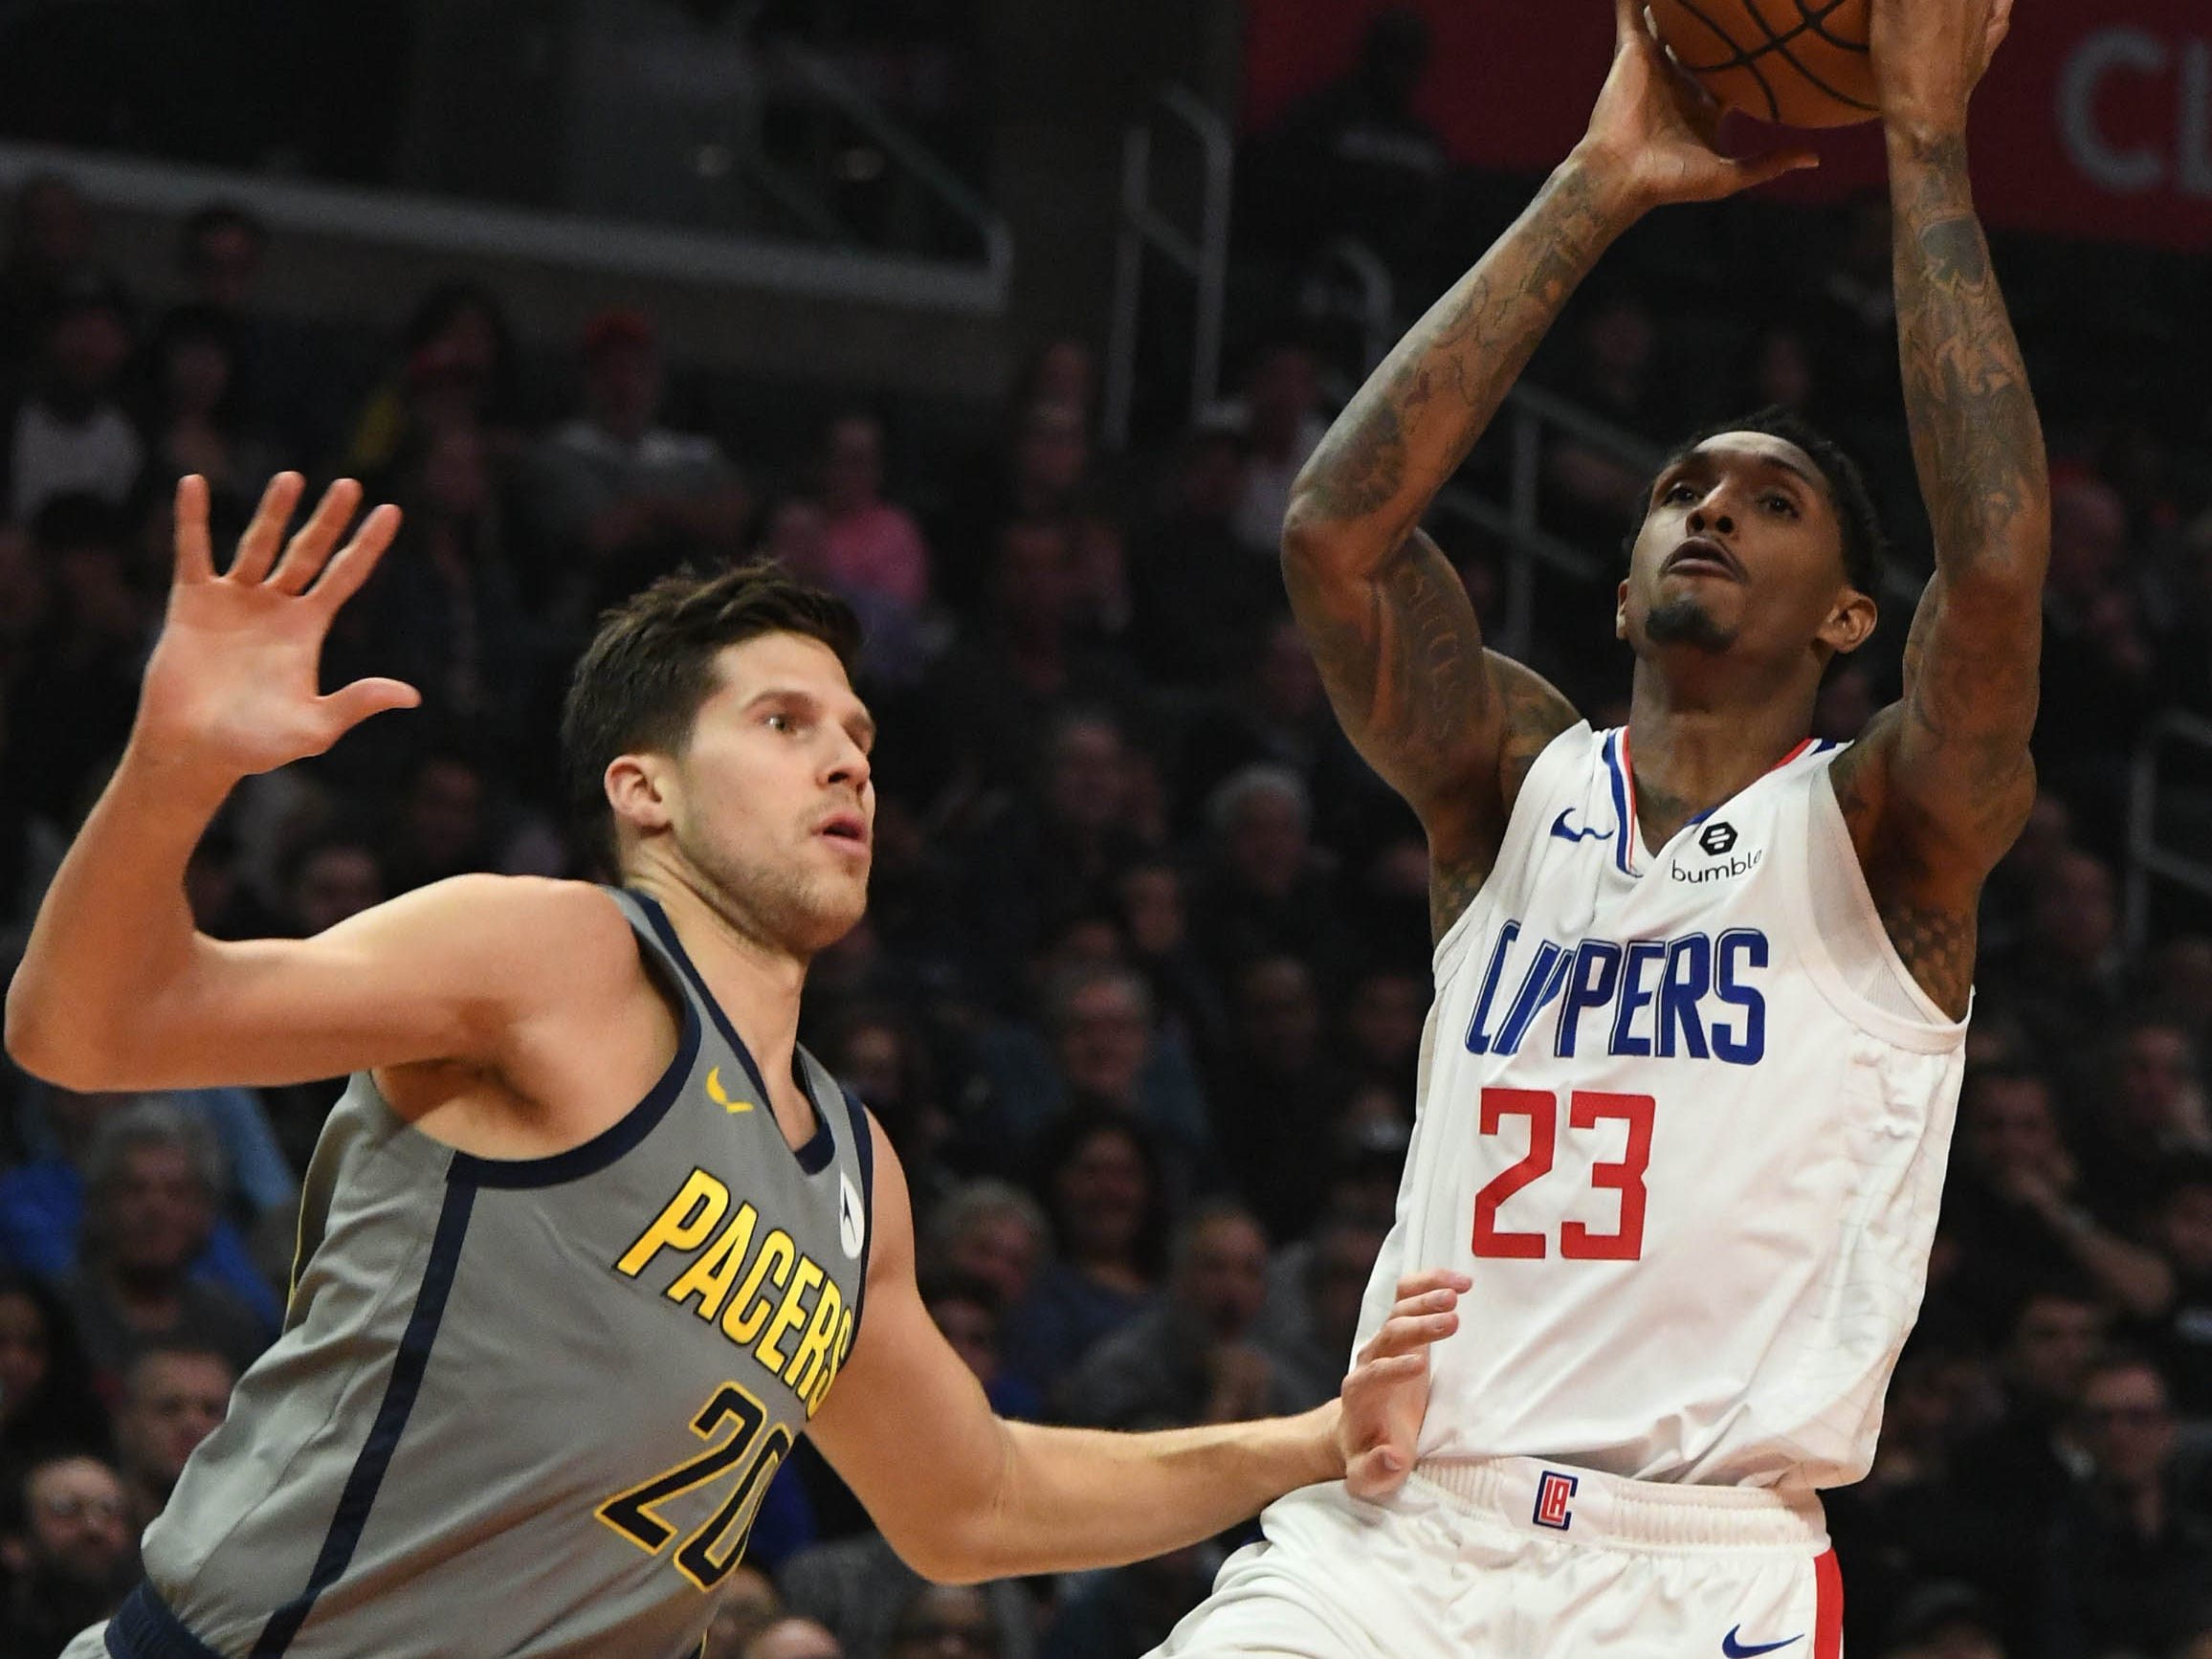 Mar 19, 2019; Los Angeles, CA, USA; LA Clippers guard Lou Williams (23) shoots against Indiana Pacers forward Doug McDermott (20) in the first half at the Staples Center.